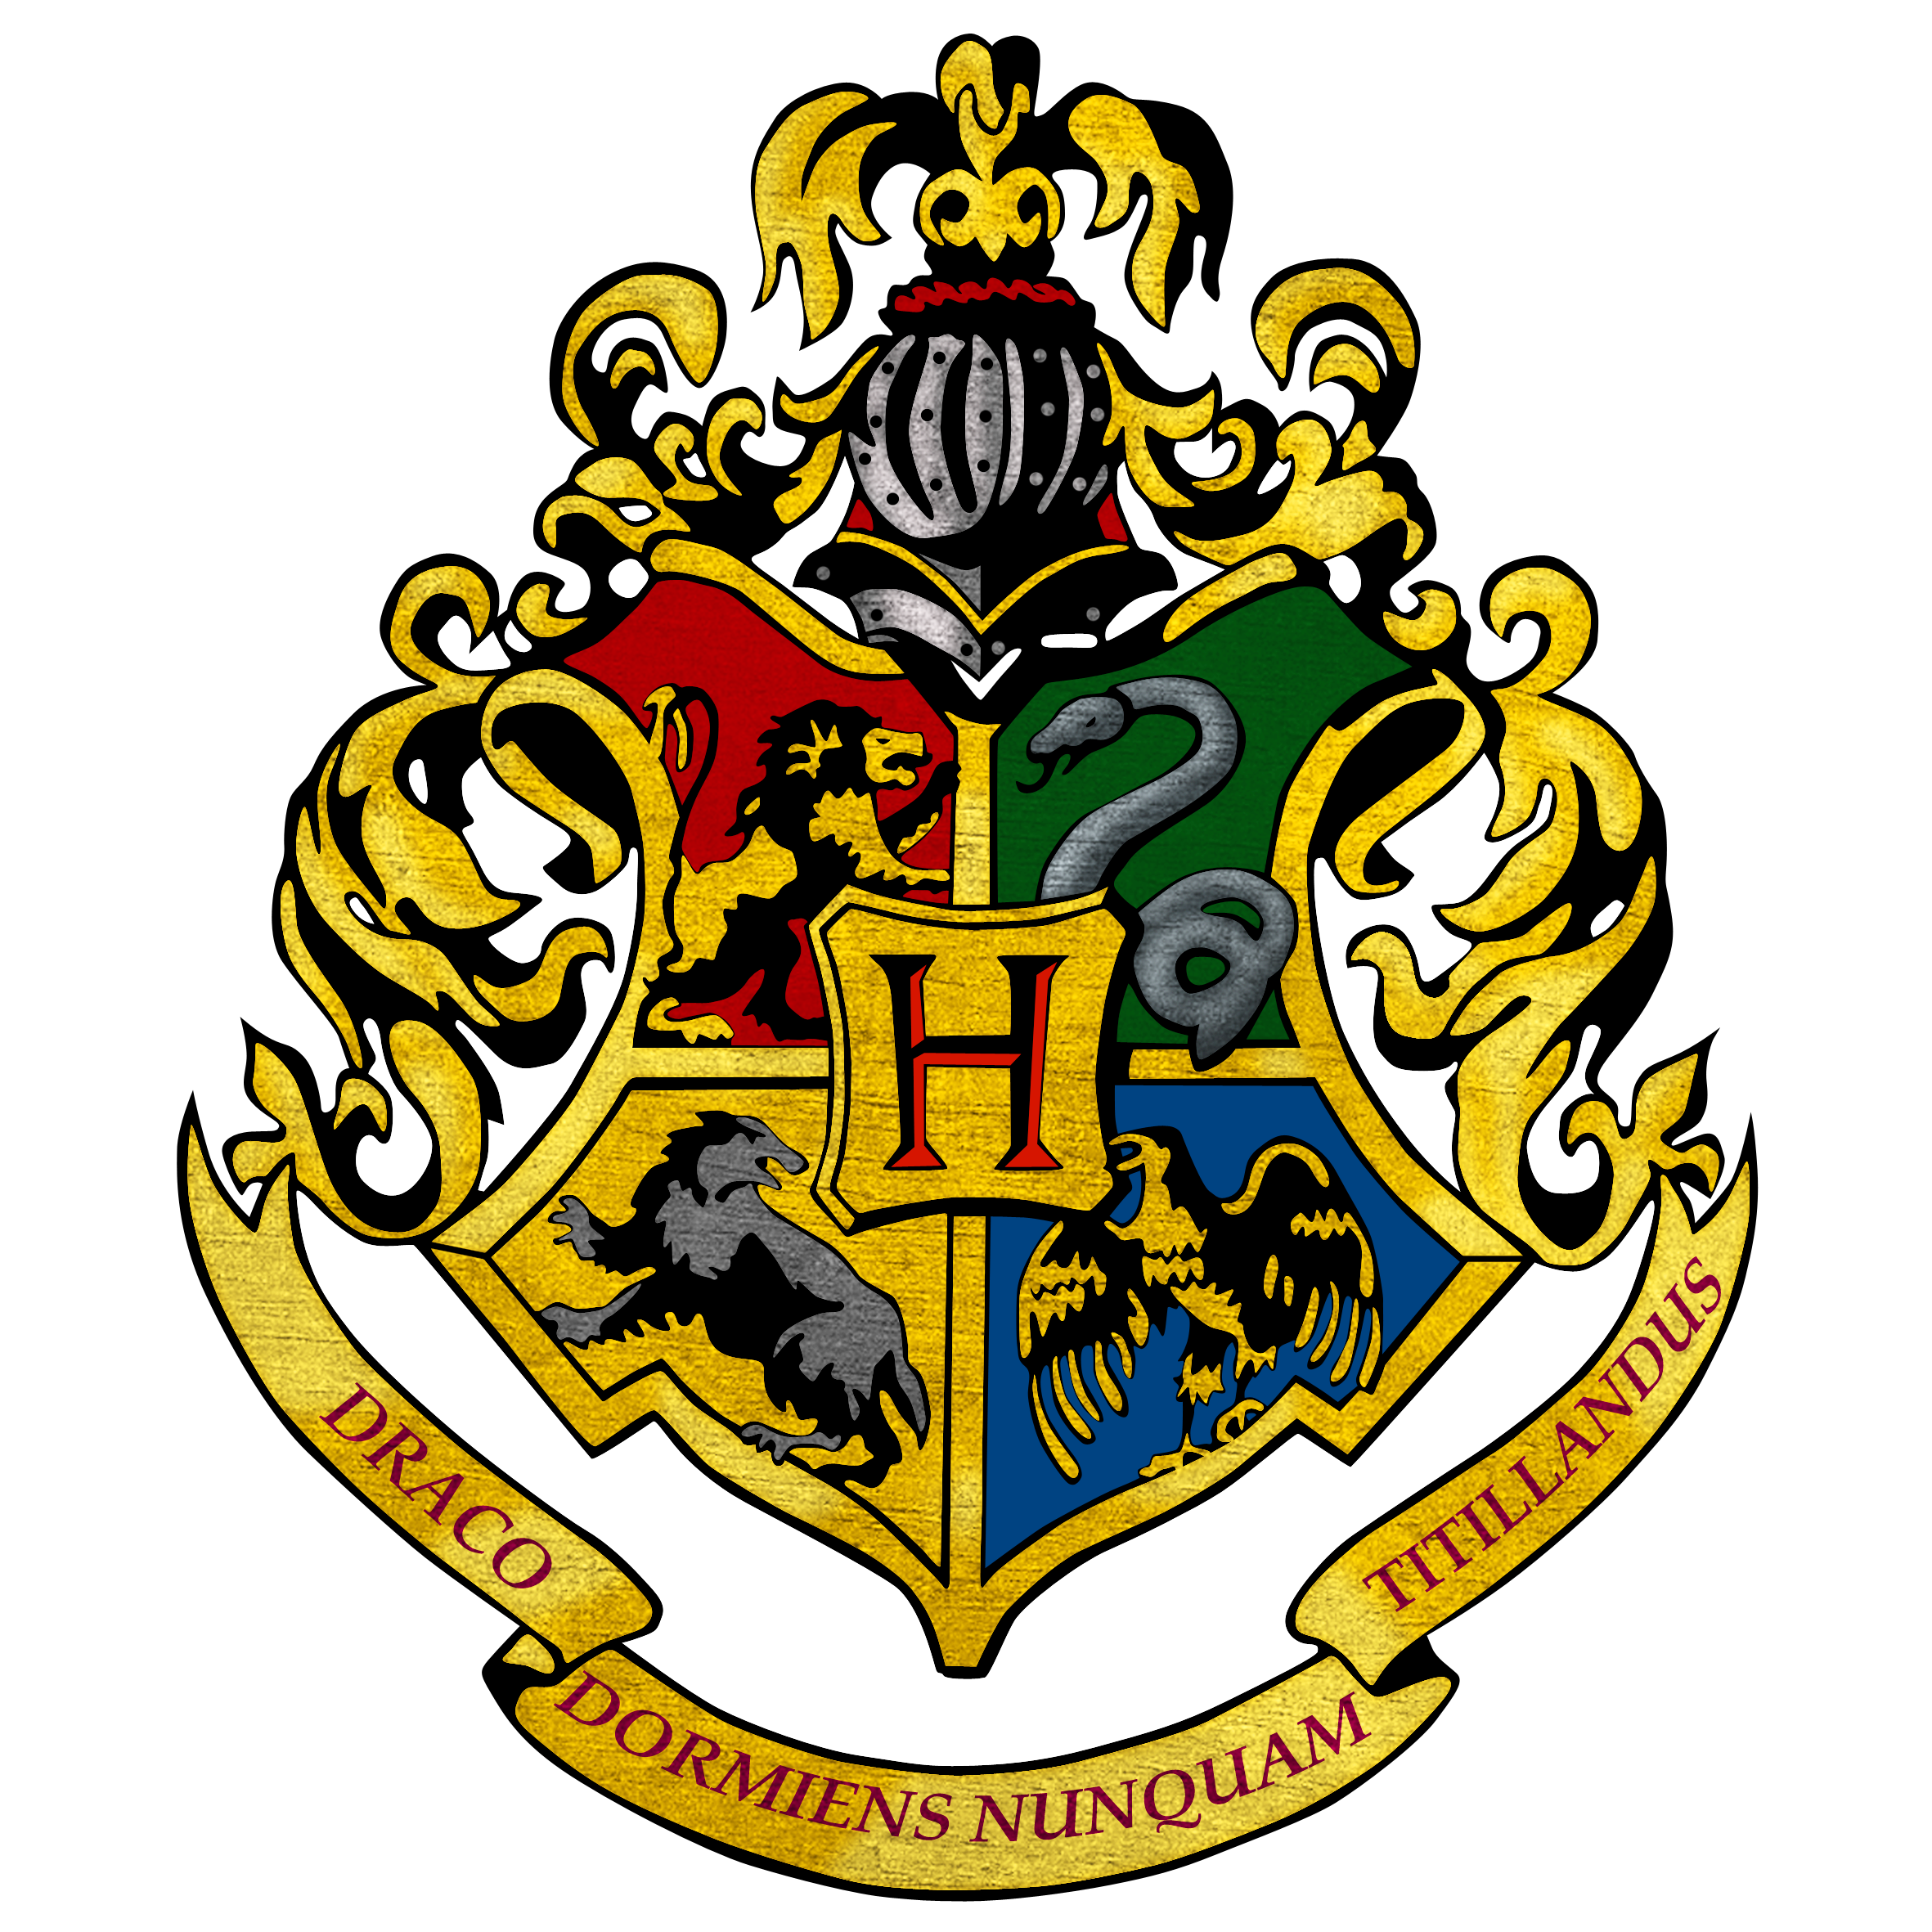 Google SearchHarry Hogwarts Printable Potter Emblem Cadernos w0kXZNP8nO